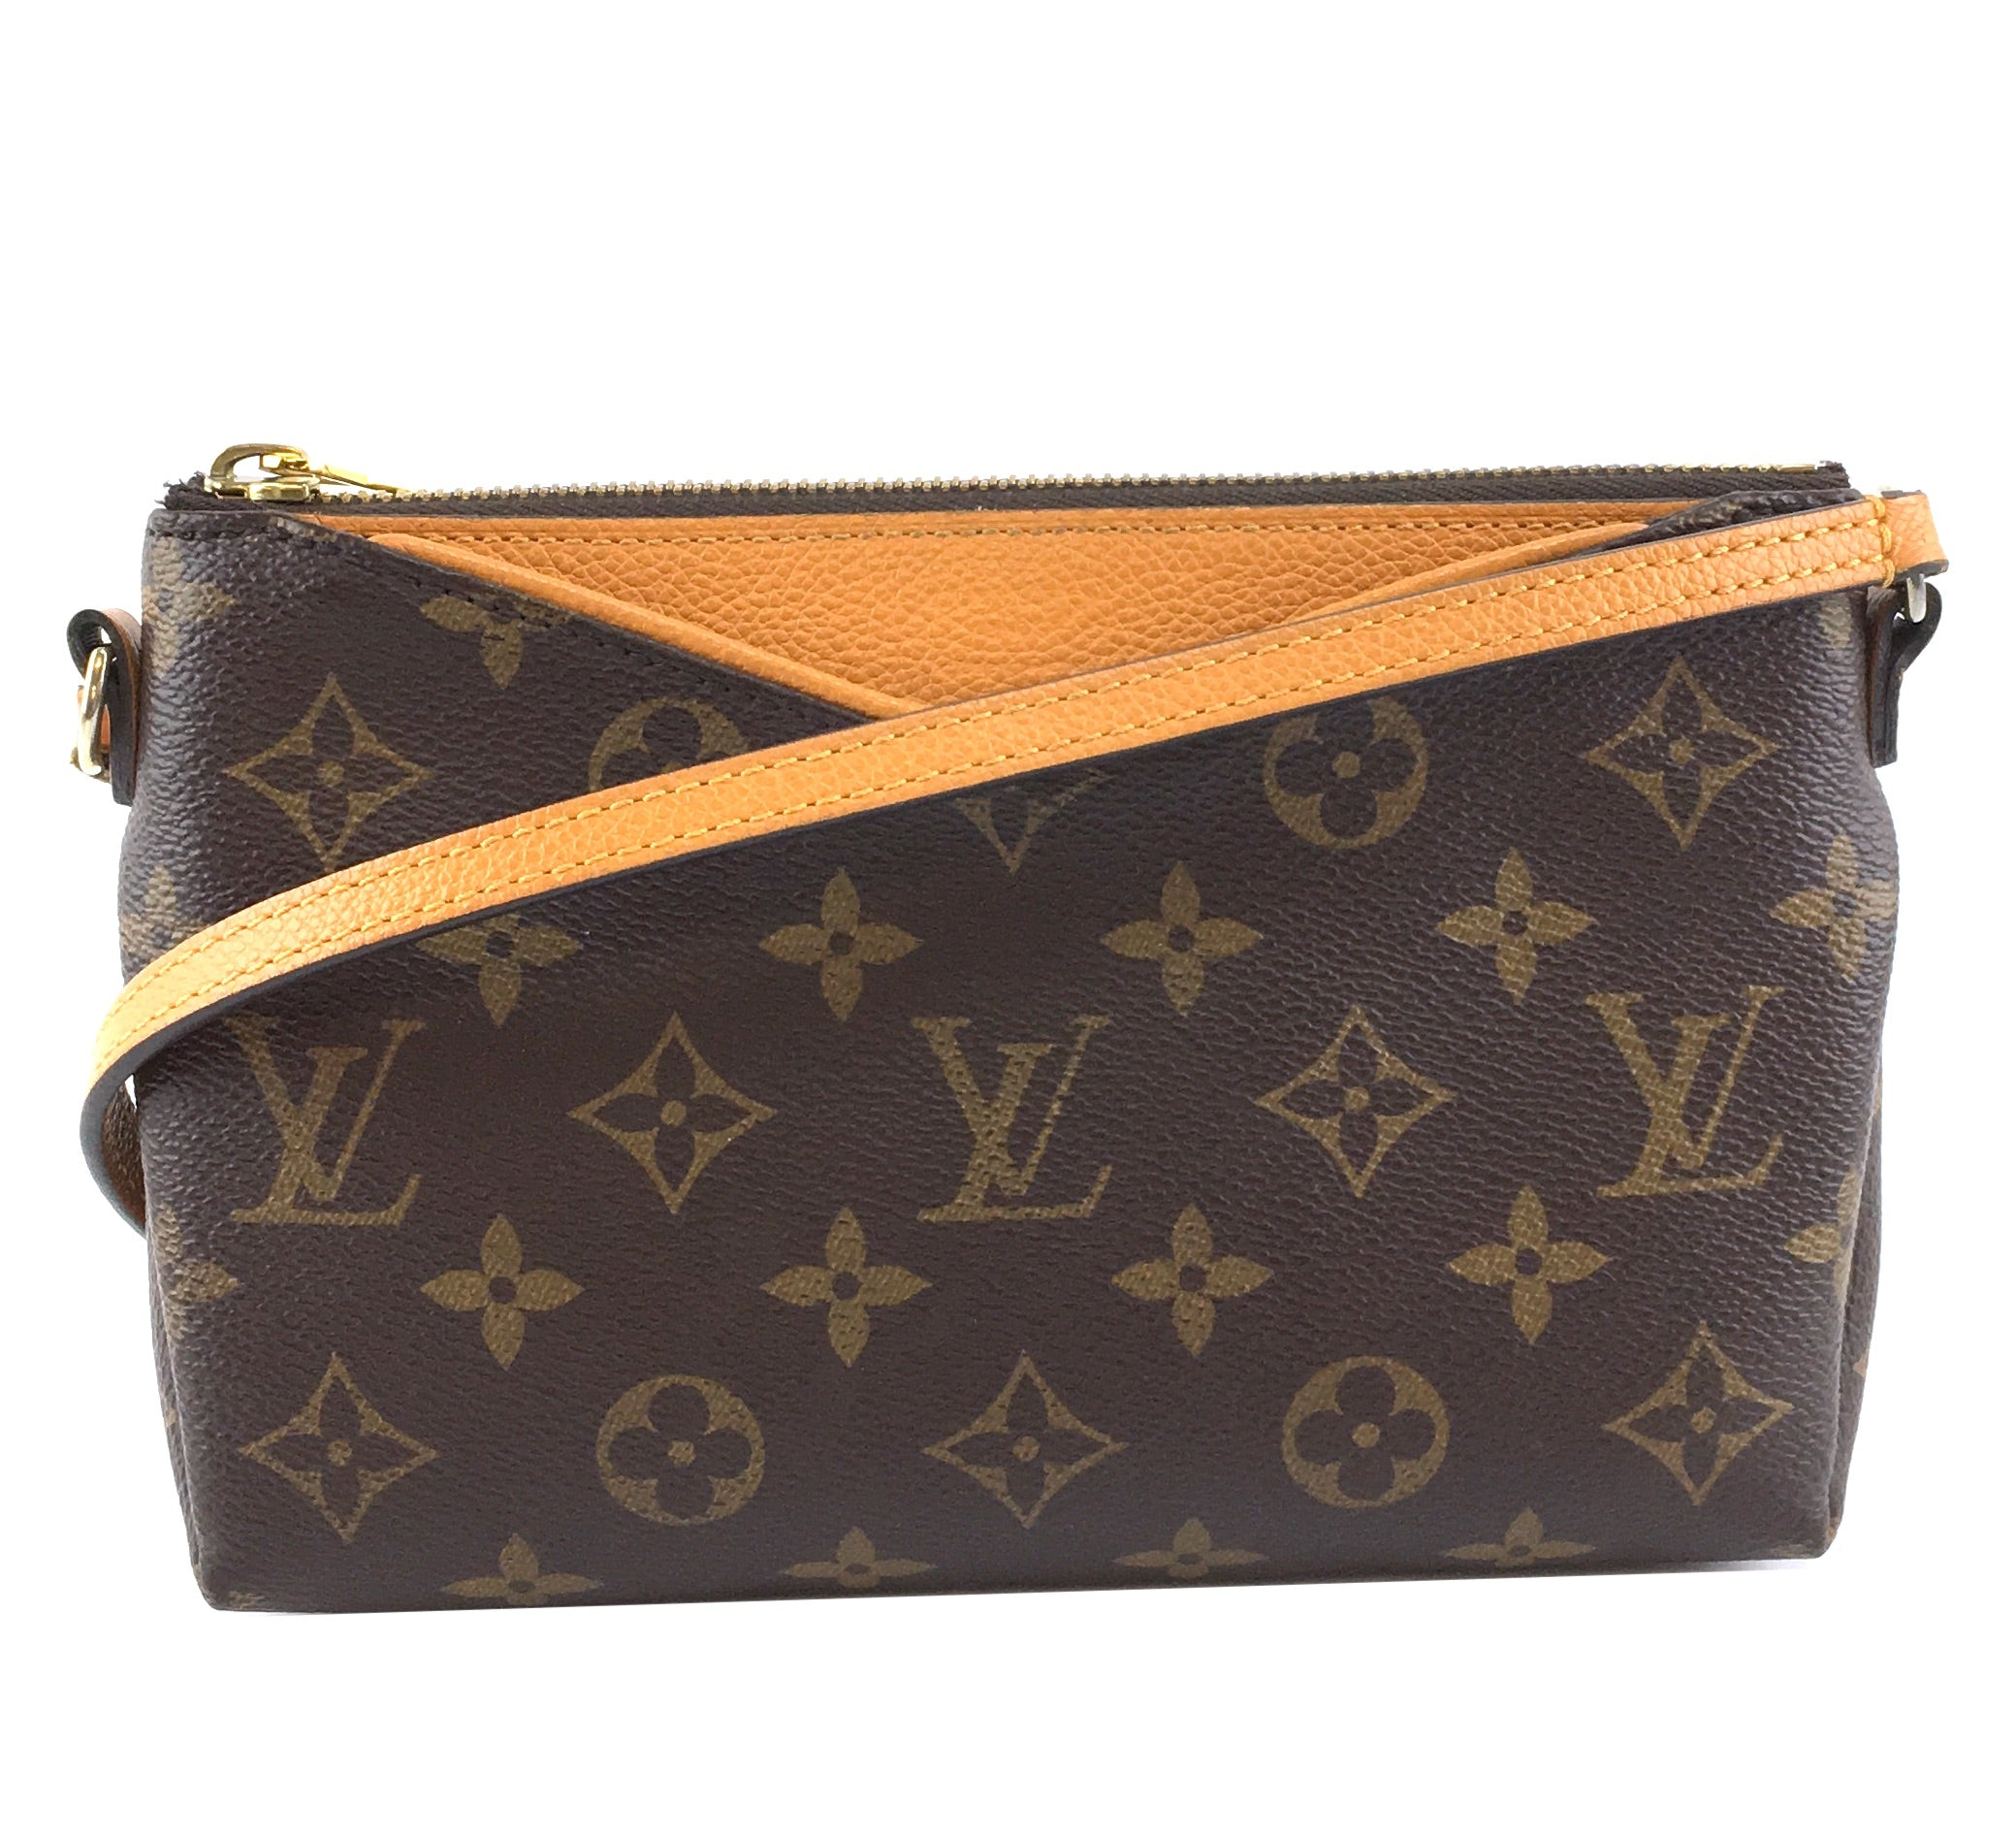 Louis Vuitton Pallas Clutch Monogram Canvas and Calfskin